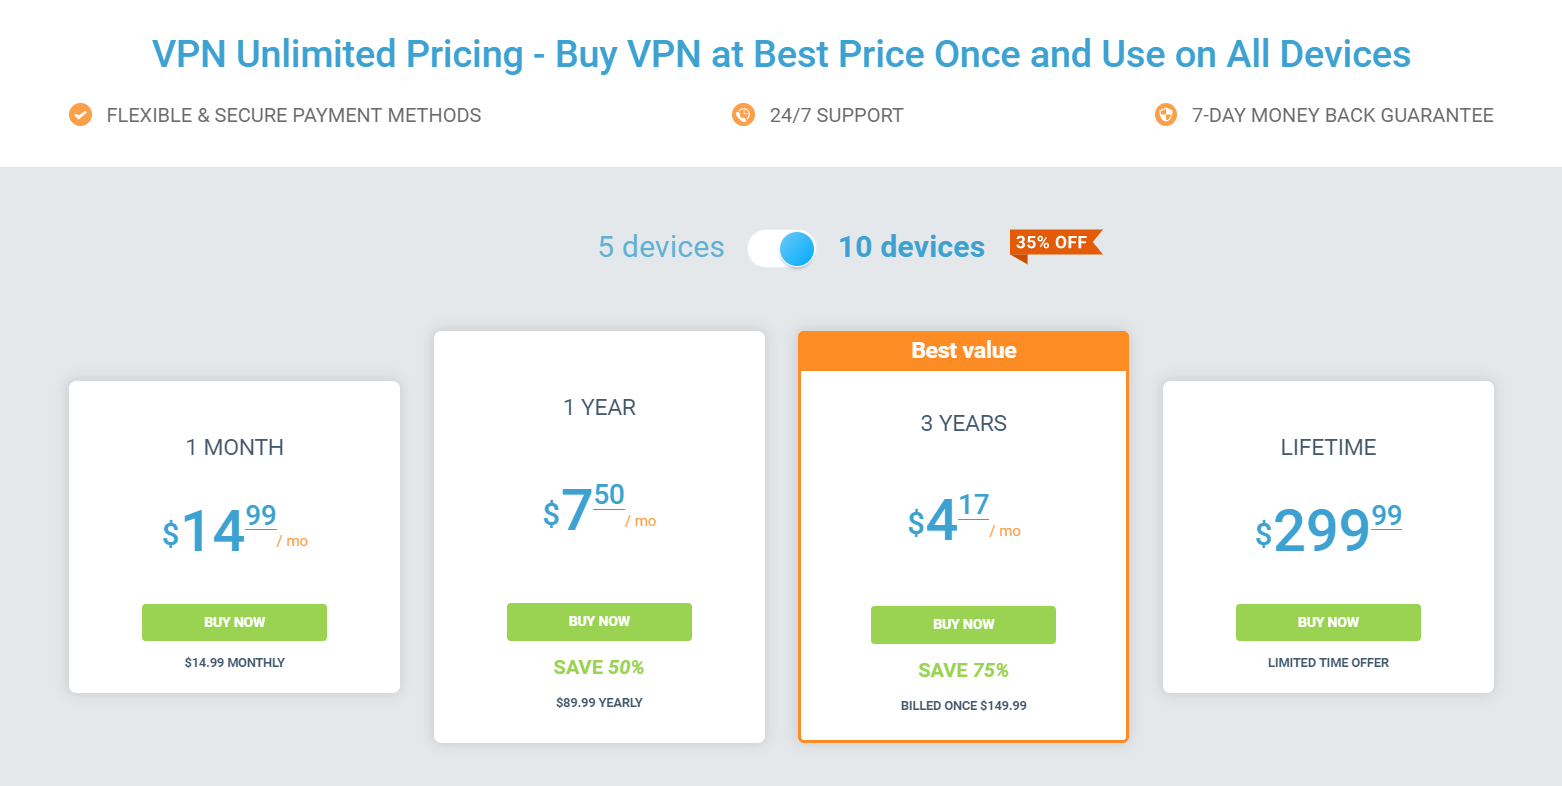 KeepSolid VPN Unlimited 10 Devices Price